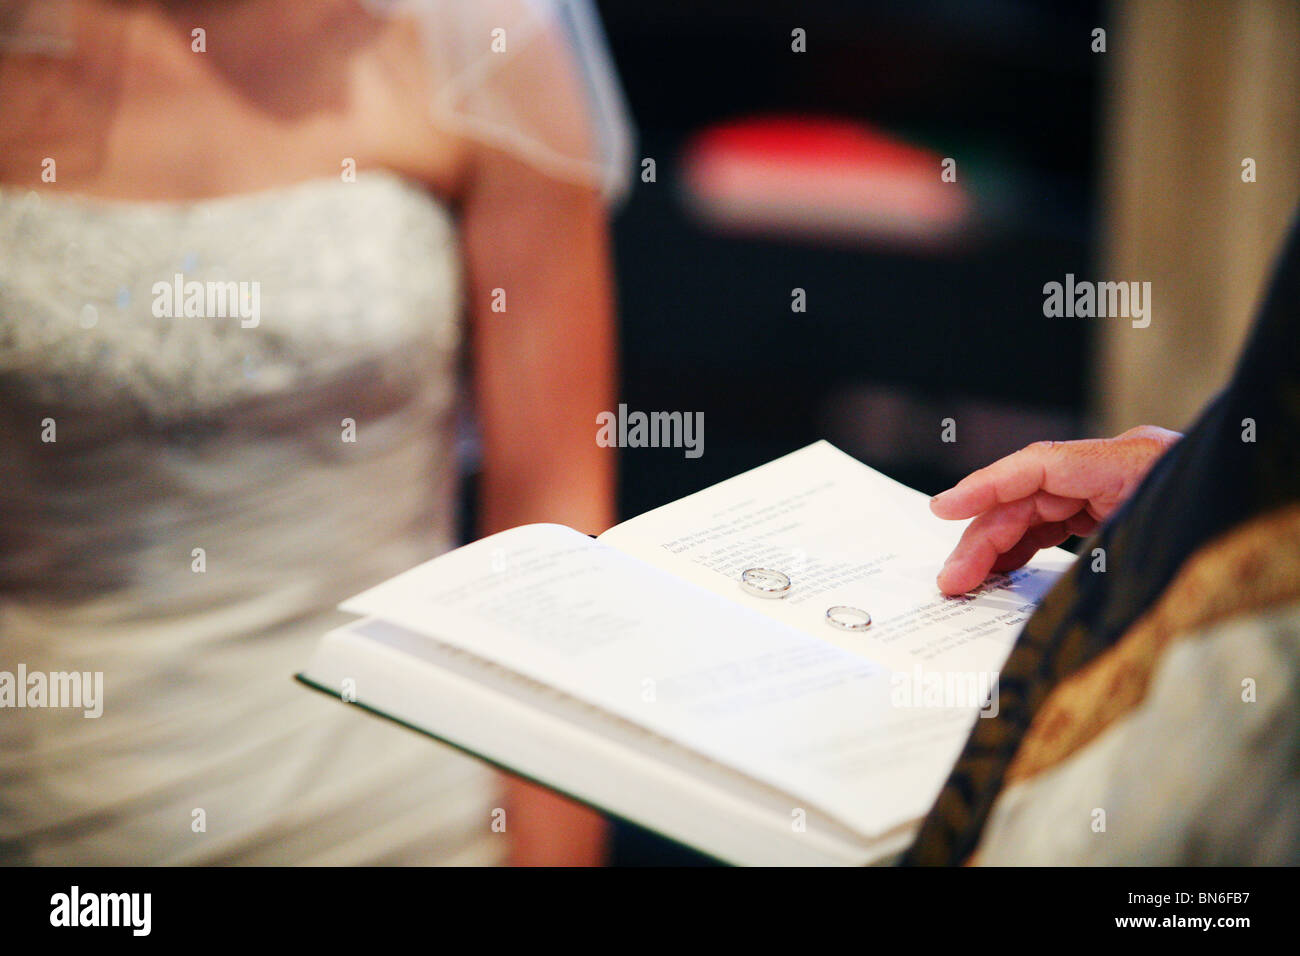 Wedding bands rings sitting on holy bible held by vicar priest during traditional religious church marriage ceremony Stock Photo